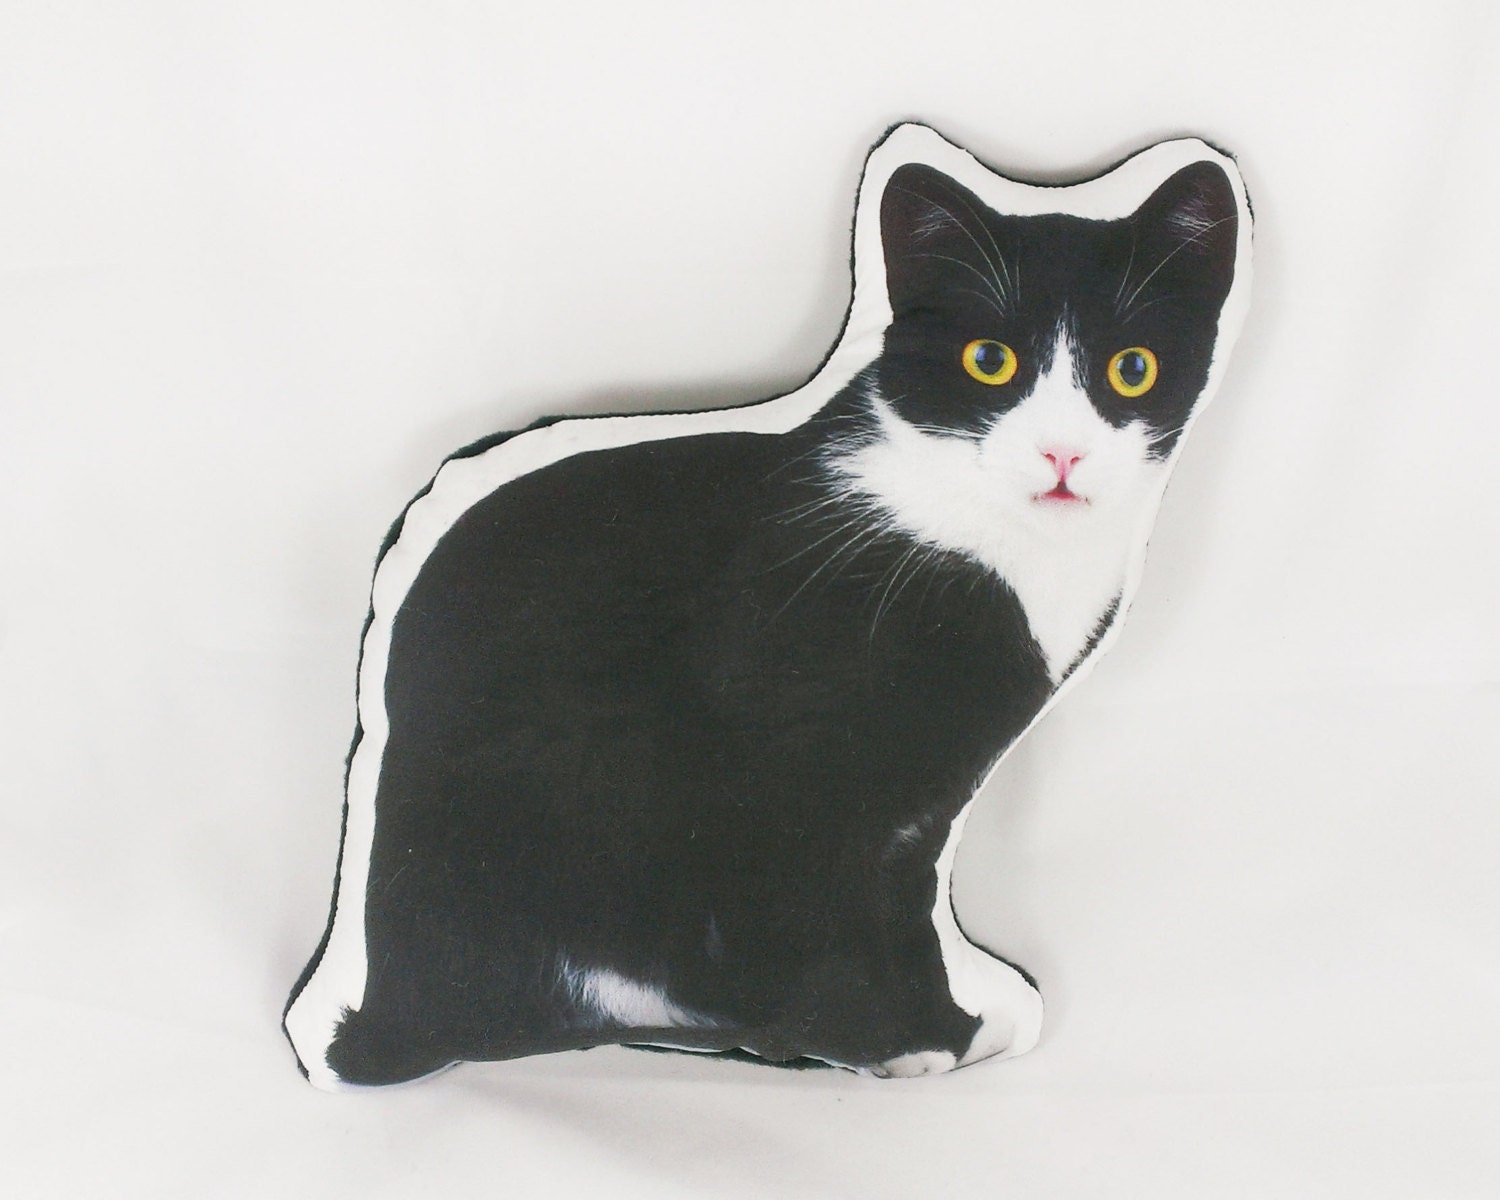 Cat Pillow plush cat gifts for women black white cat pillow